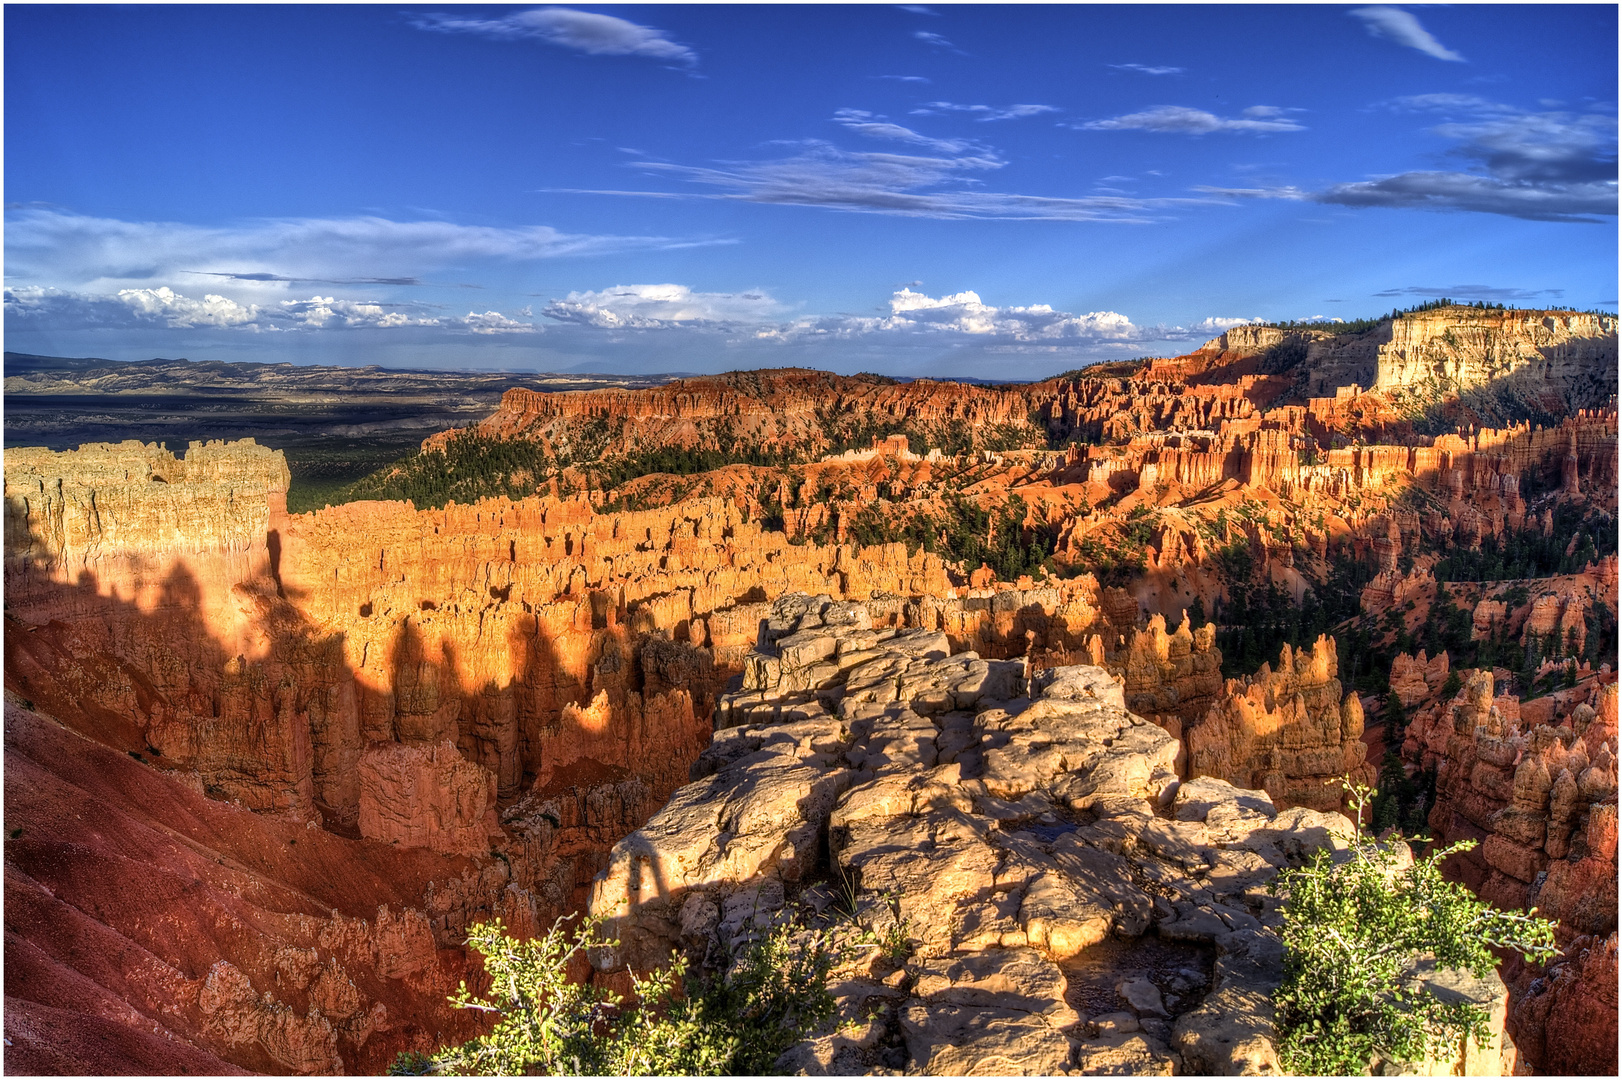 Sonnenuntergang am Bryce Canyon